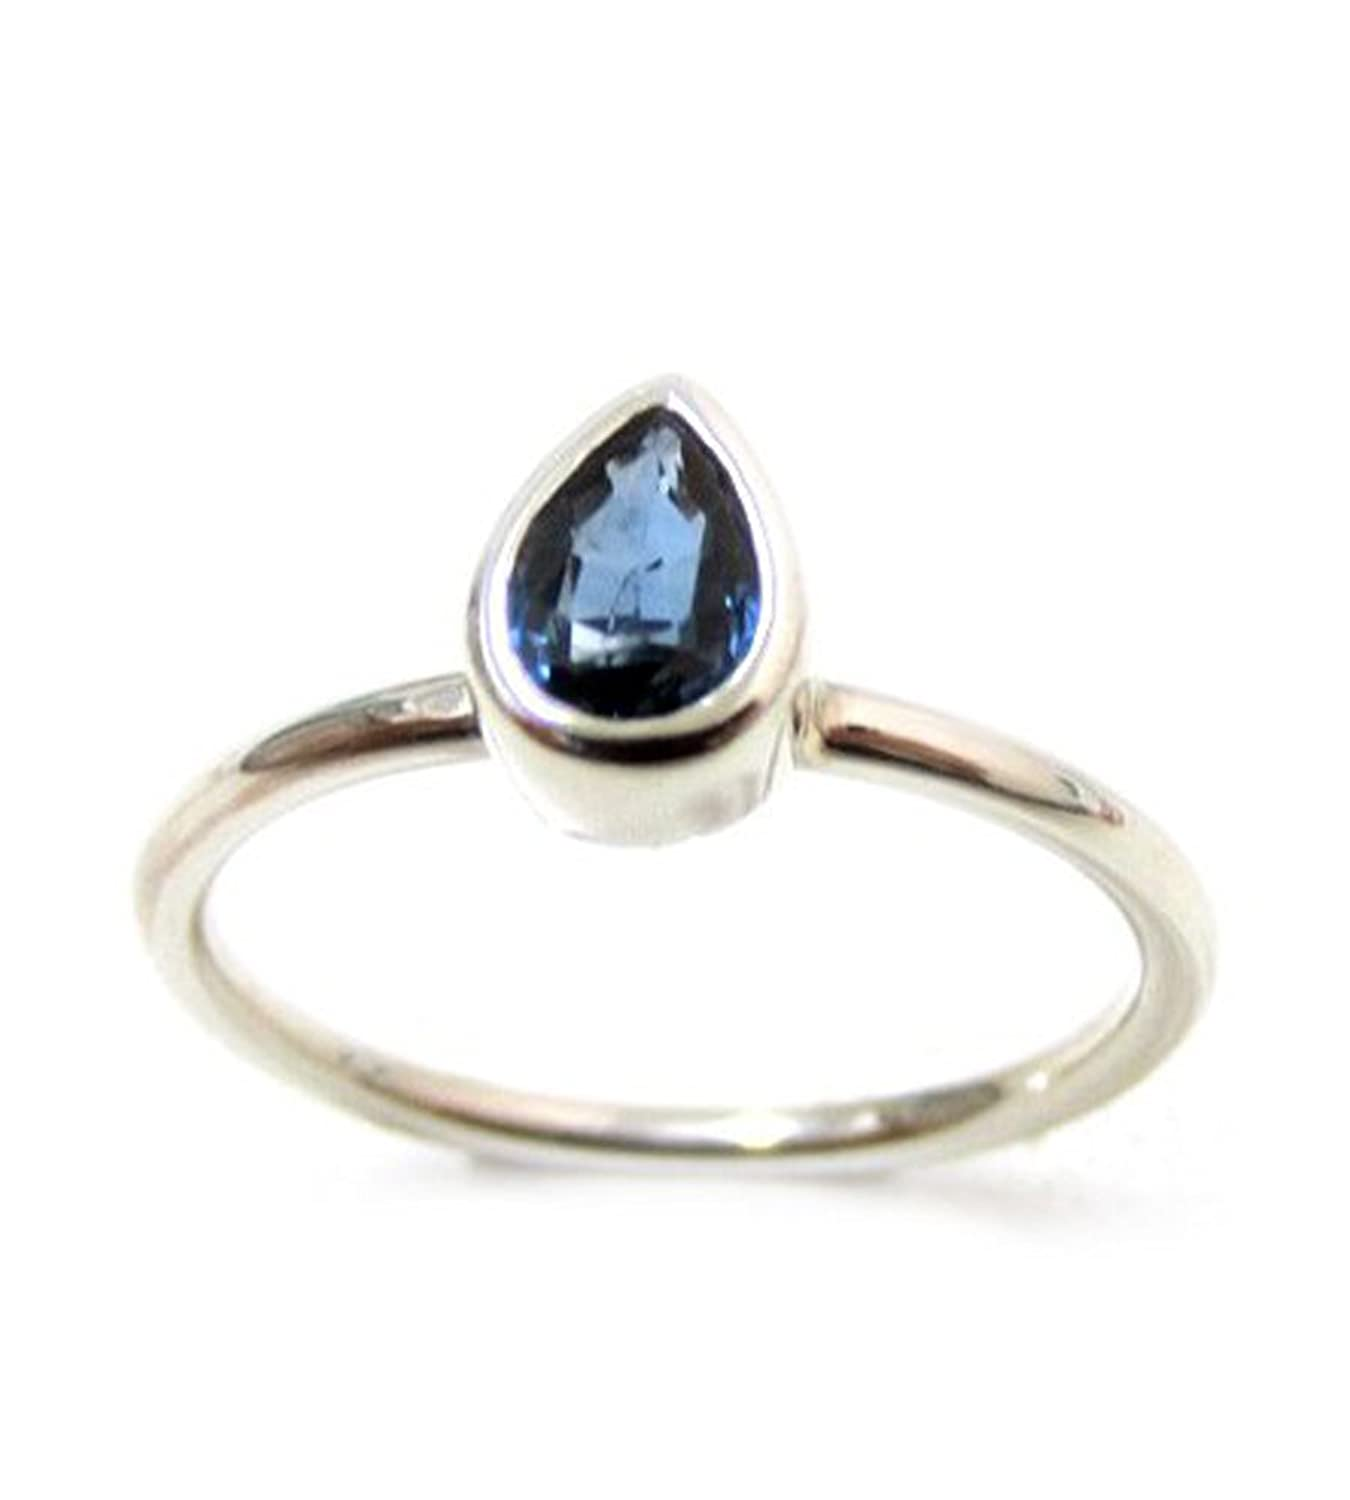 ZilverPassion Stacking Ring Pear Shaped Genuine Blue Sapphire in Sterling Silver, September Birthstone,Available in Gold Plated, Rose Gold Plated (Size 2-15)